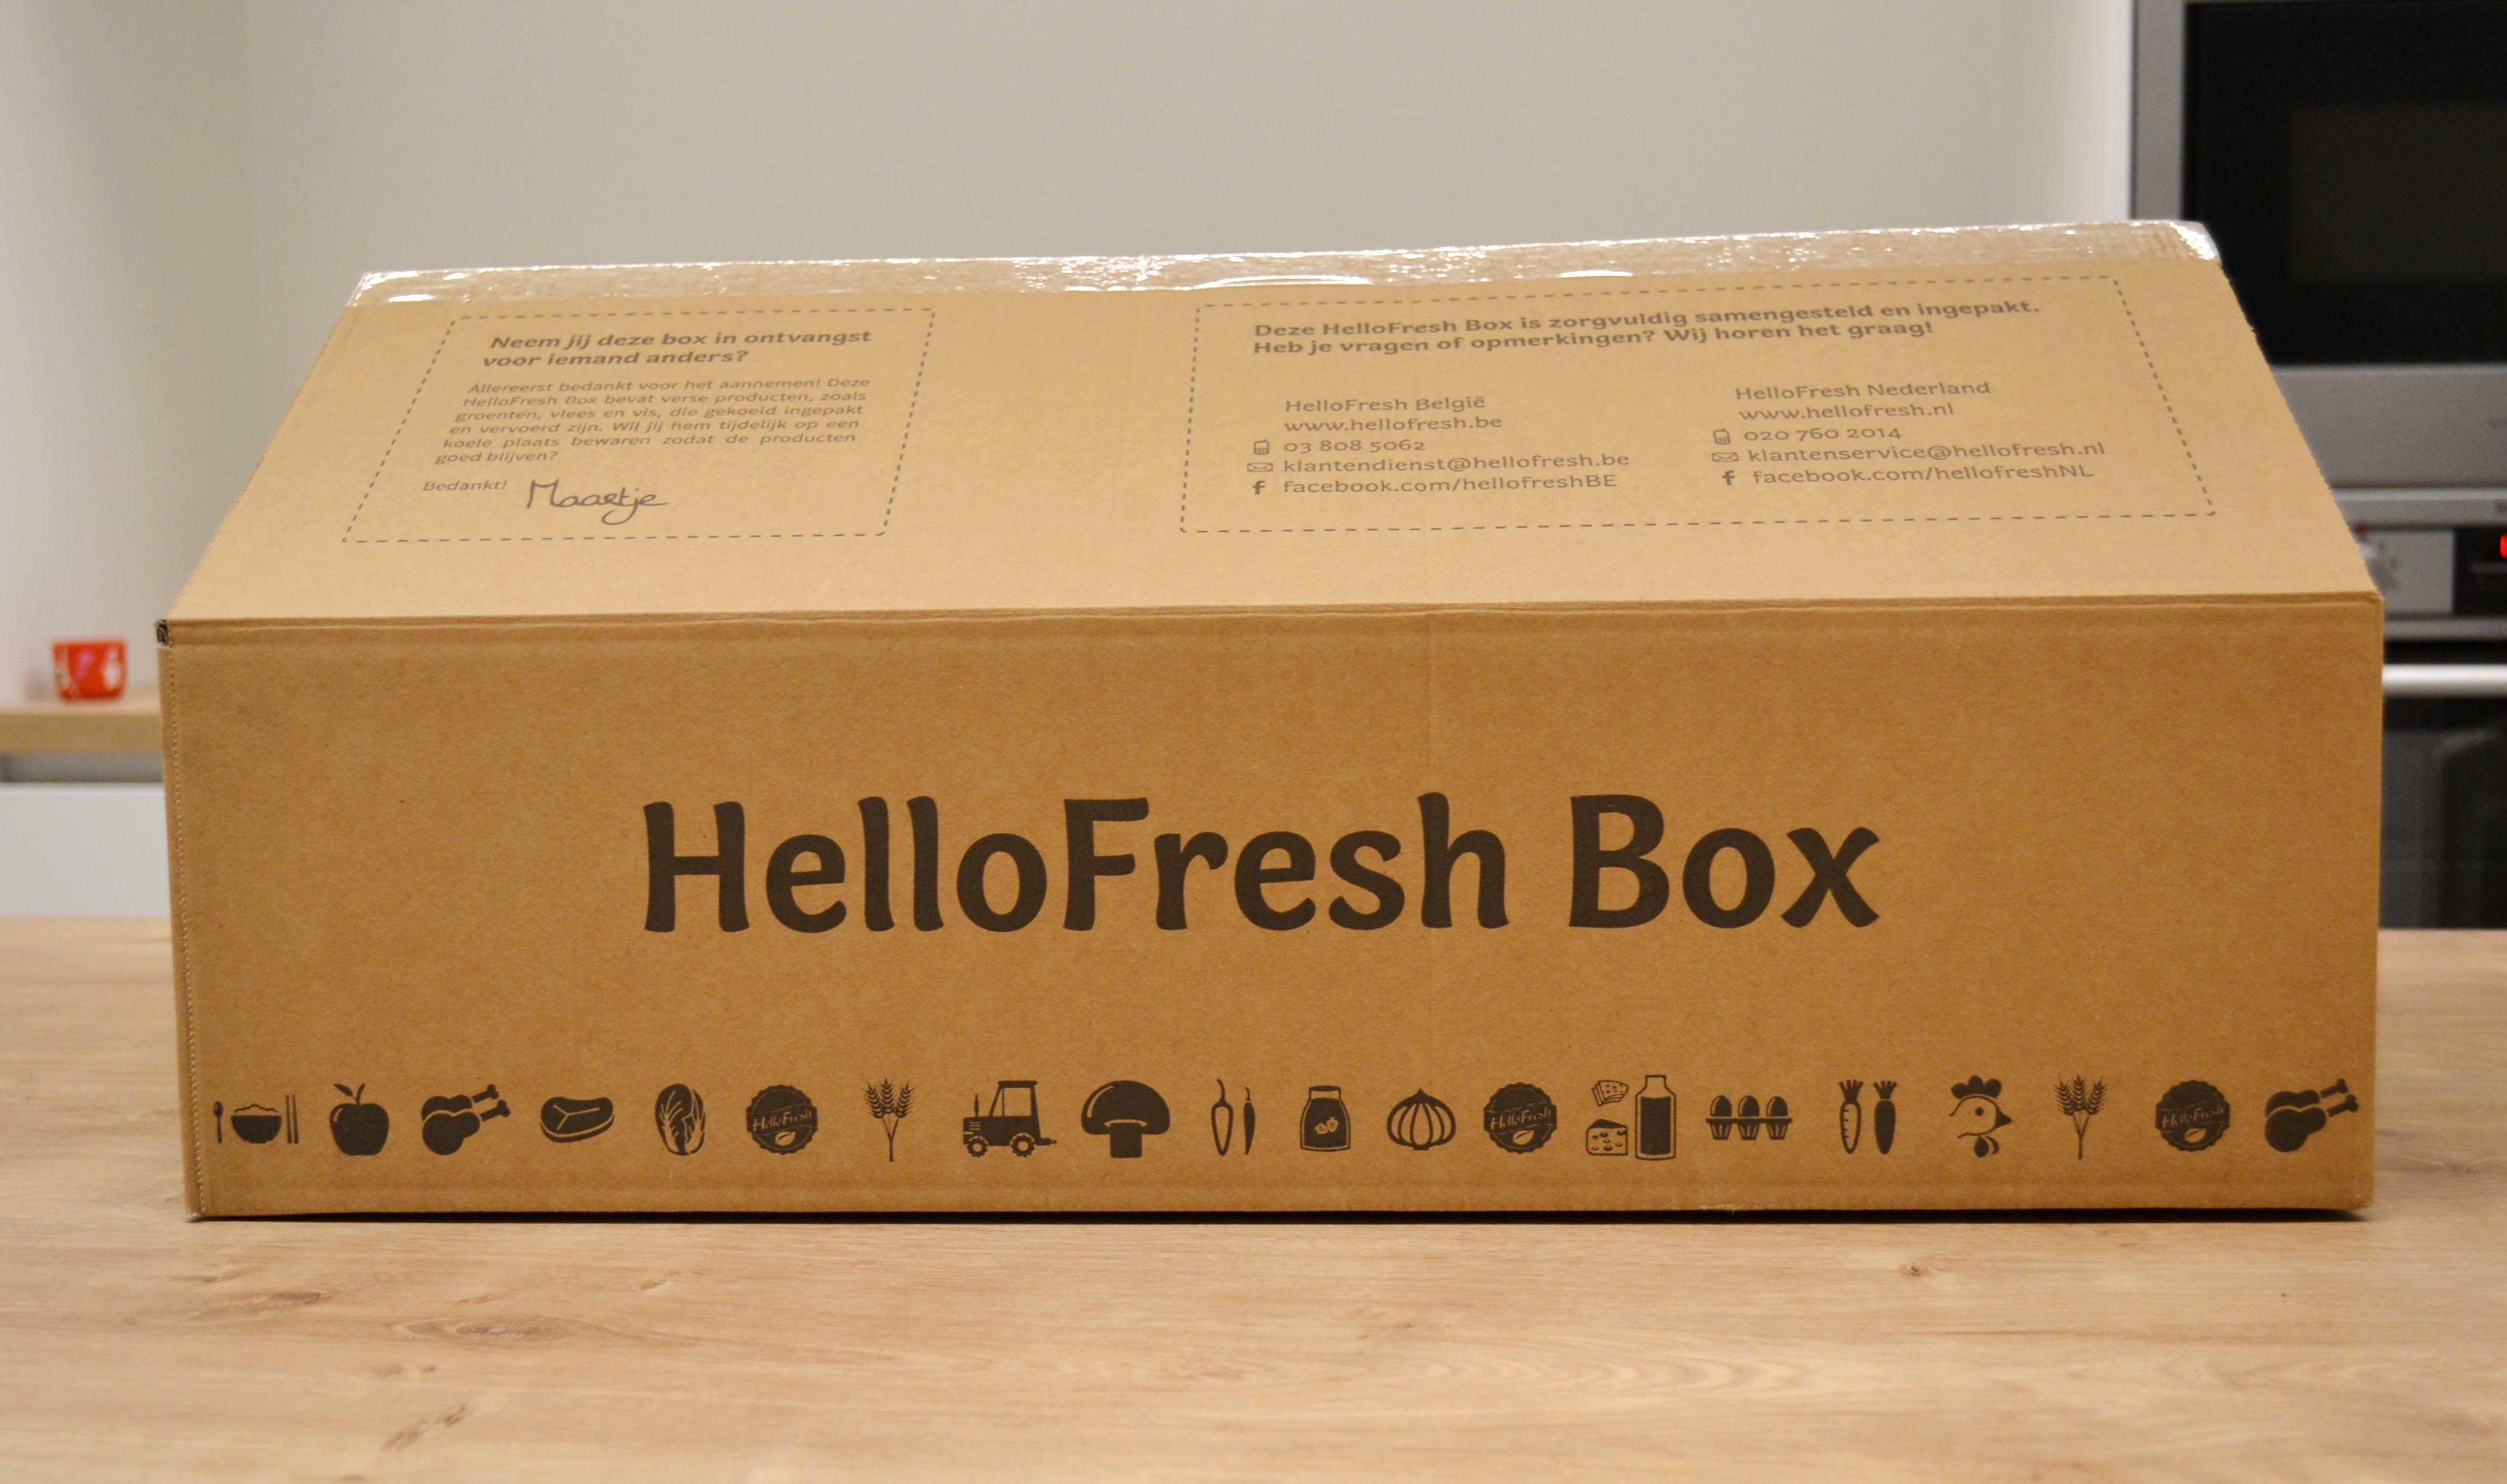 hellofresh doos